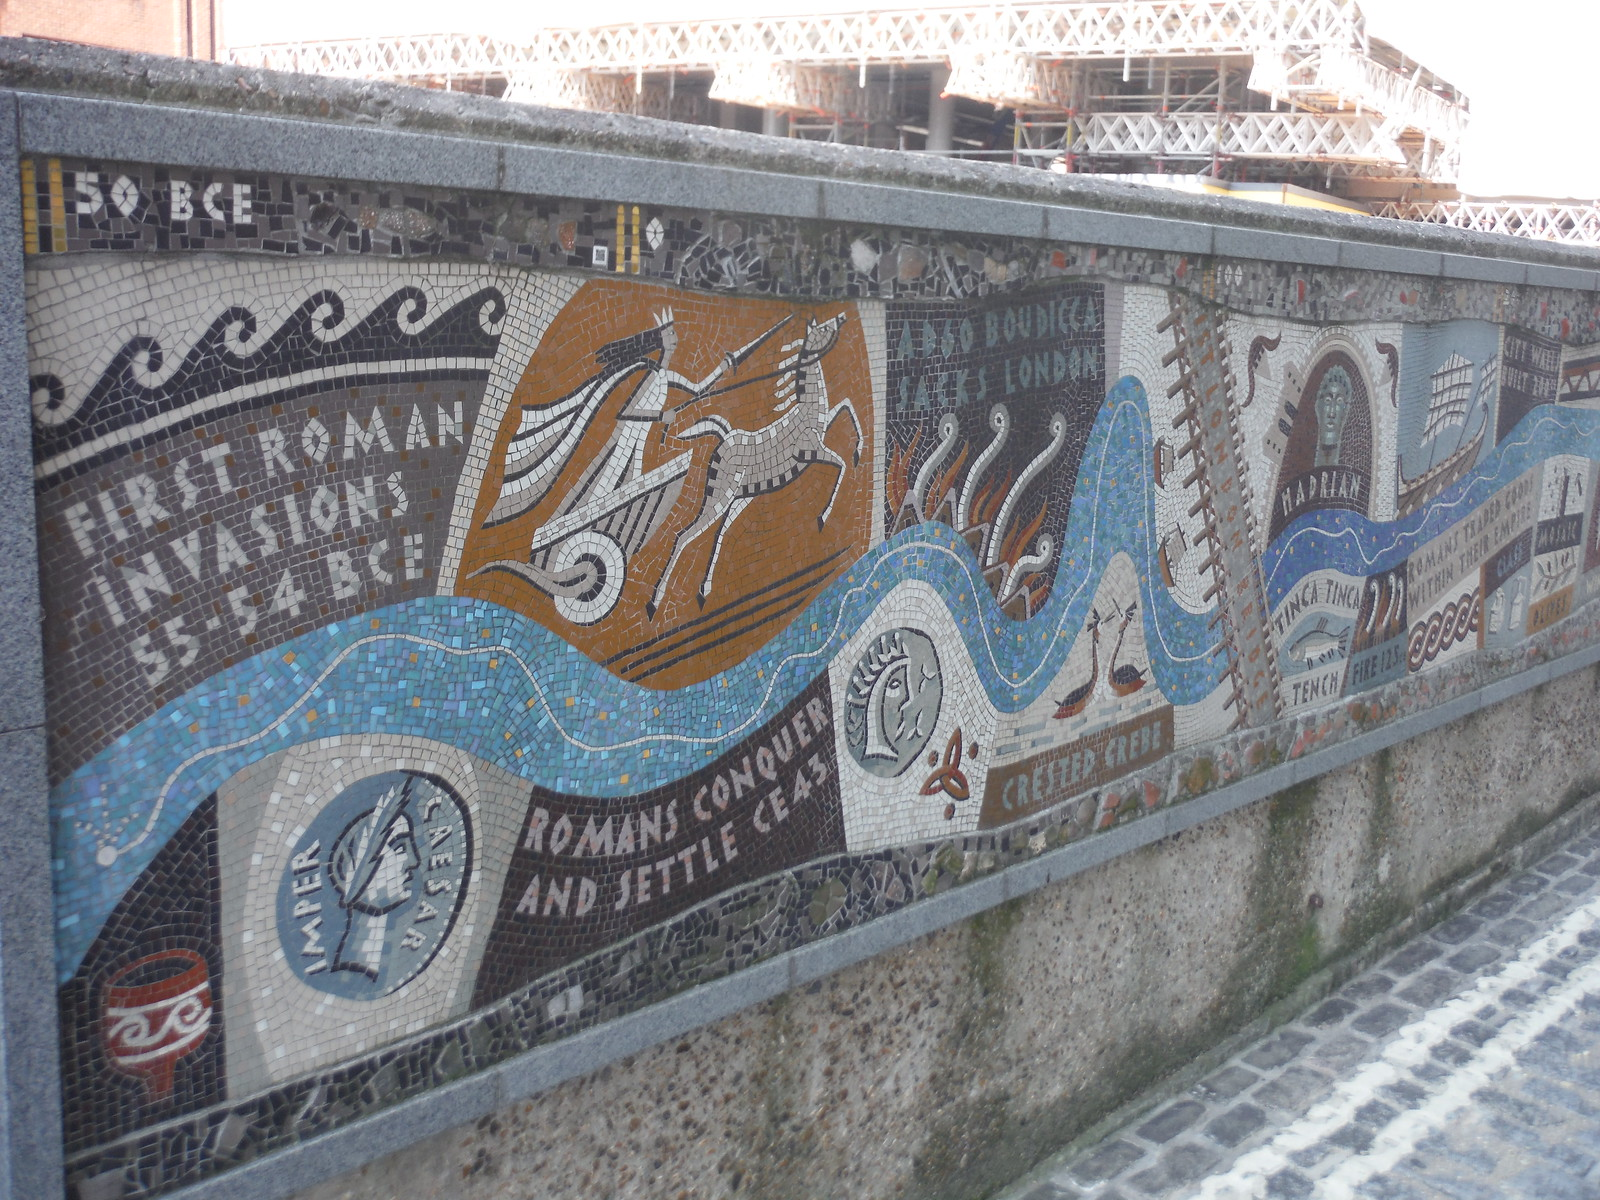 Queenhithe Mosaic (Detail: the Roman Era) SWC Short Walk 47 - The London Wall [Modern Waterfront Circular Walk]